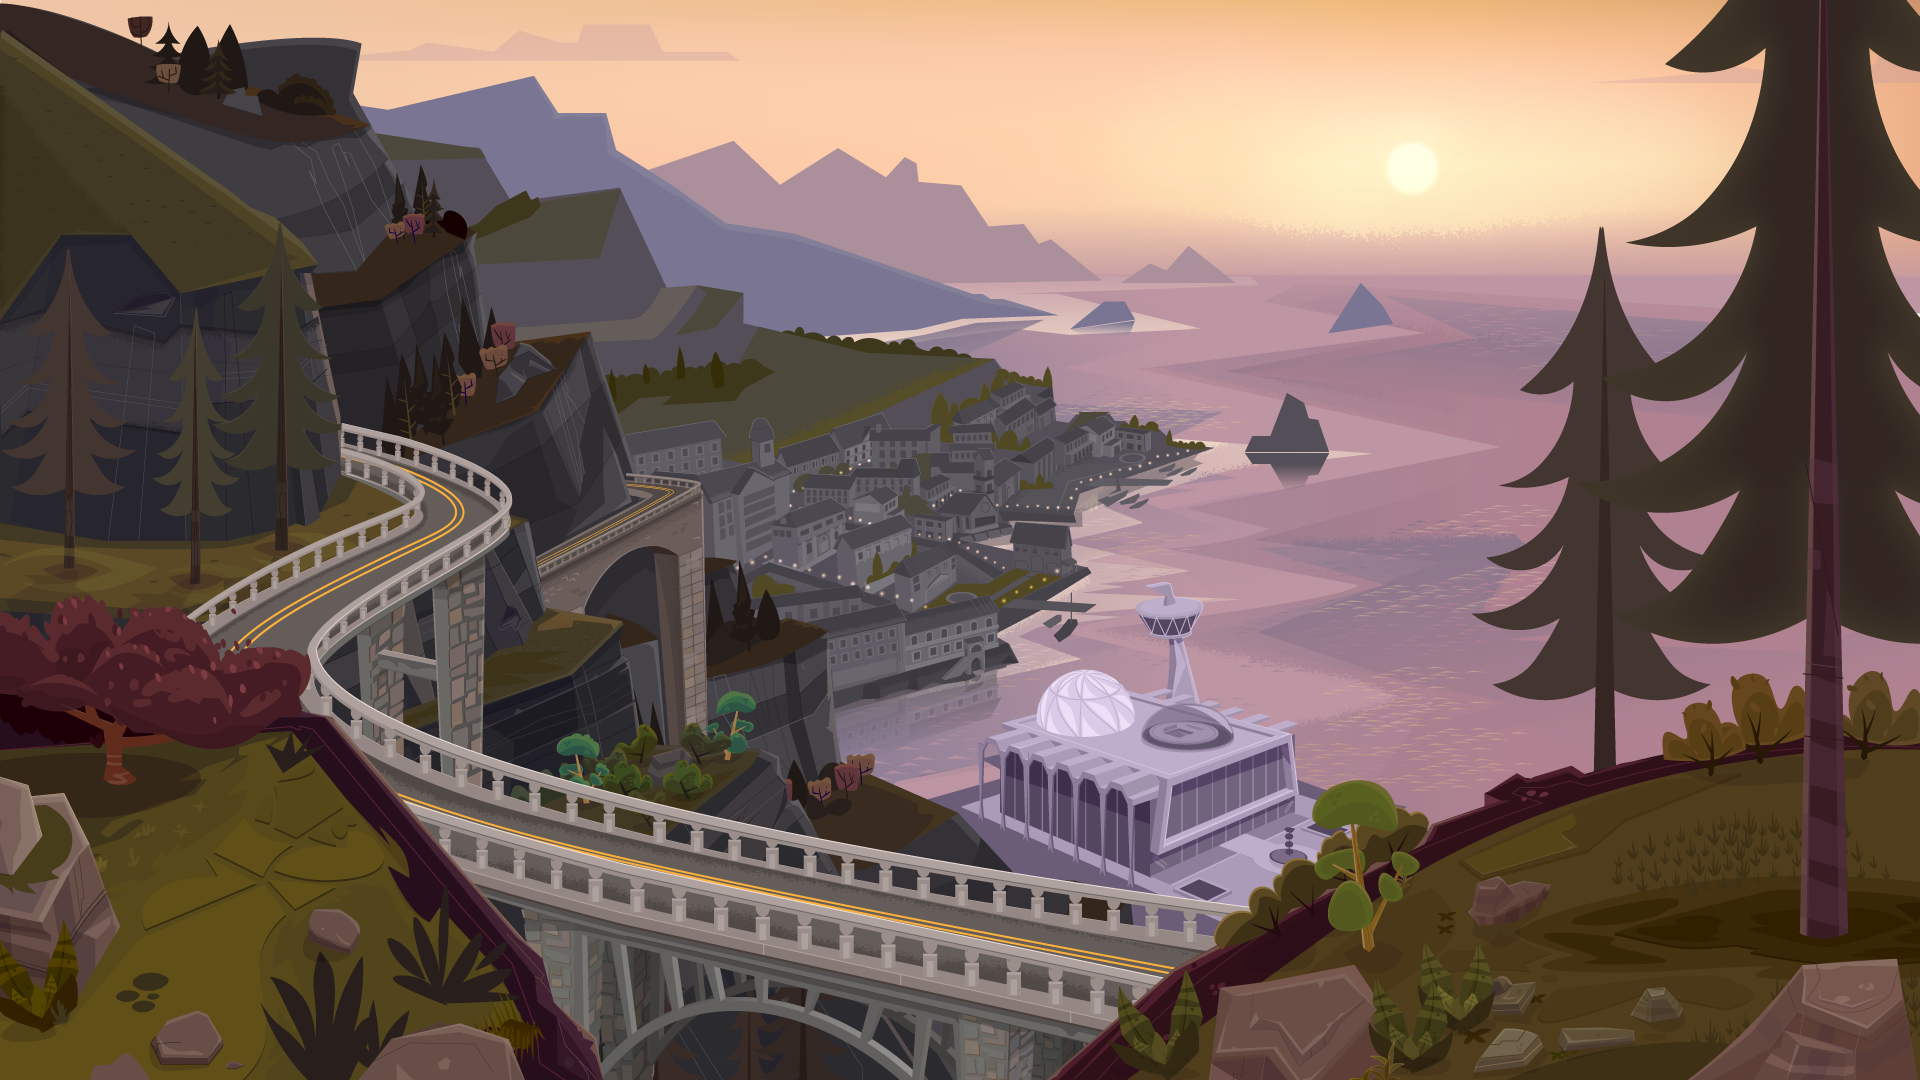 TINY OCEANS: THE INSTITUTE Visual Development & Environment Design for Various Game and Illustration Use Adobe Illustrator / Photoshop